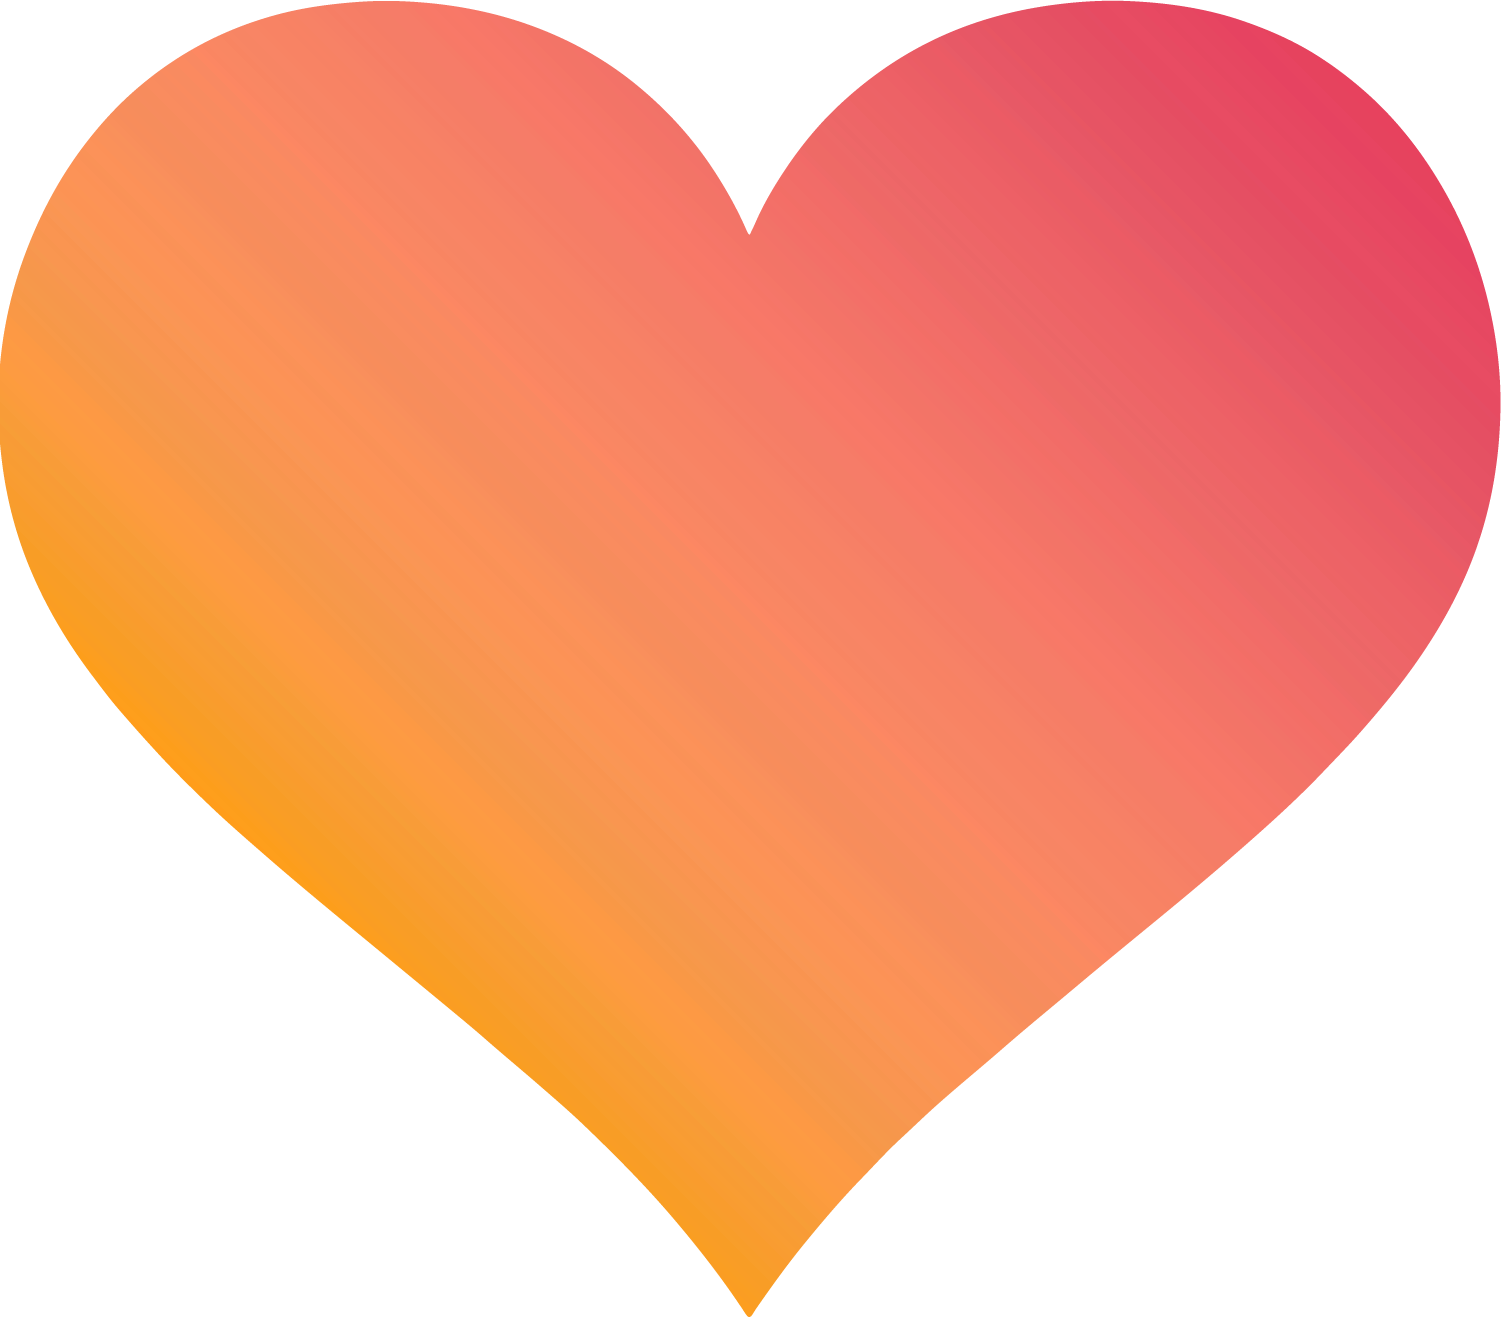 A heart with a pink and orange gradient fill